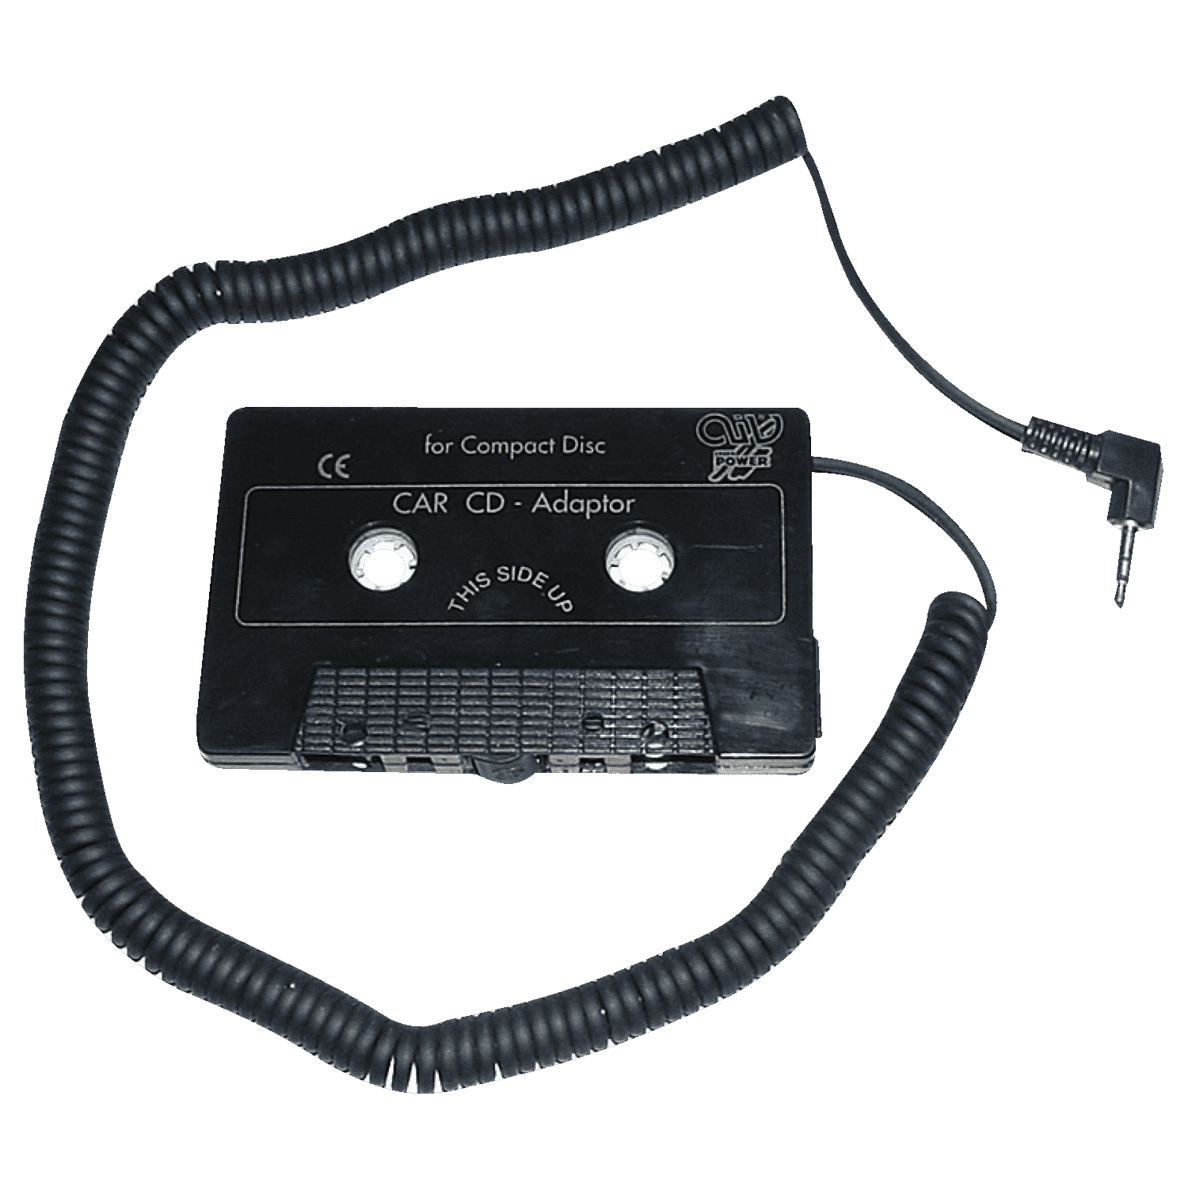 AIV 530110 CD/MP3 Adapter Kassette 530110, Kassetten Adapter, Schwarz